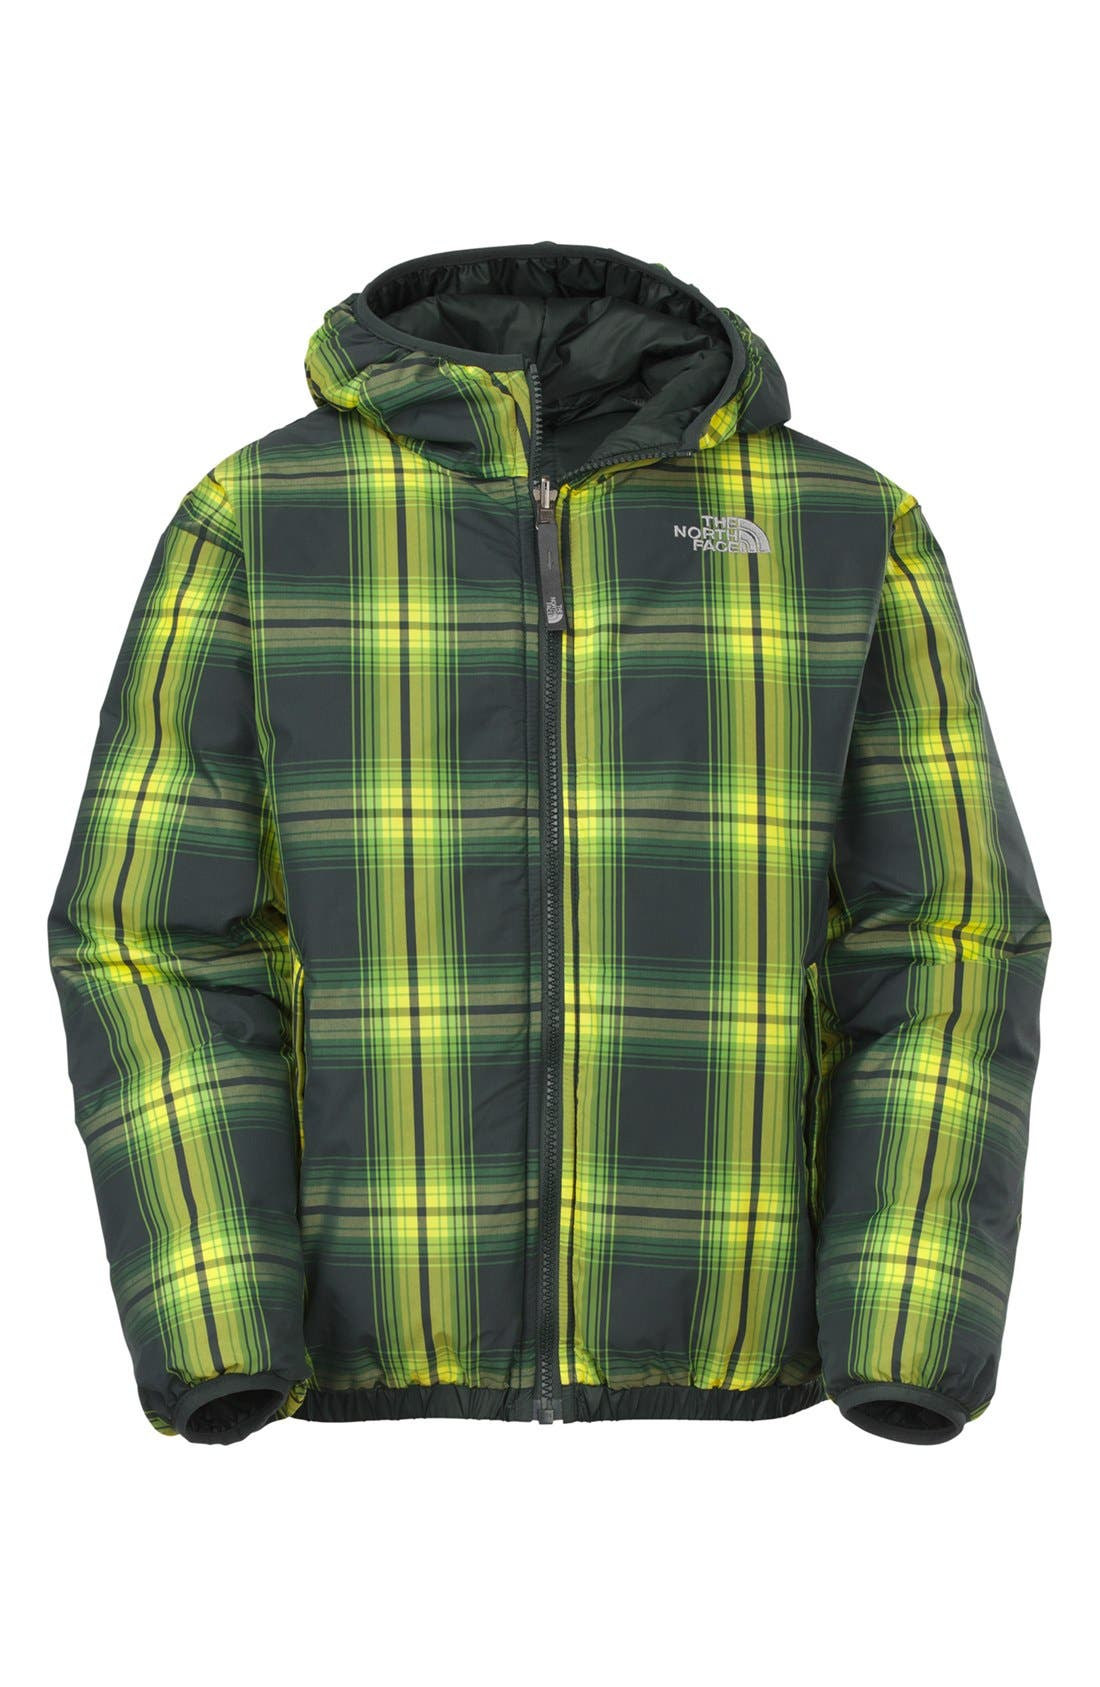 Alternate Image 2  - The North Face 'Moondoggy' Reversible Down Jacket (Little Boys & Big Boys)